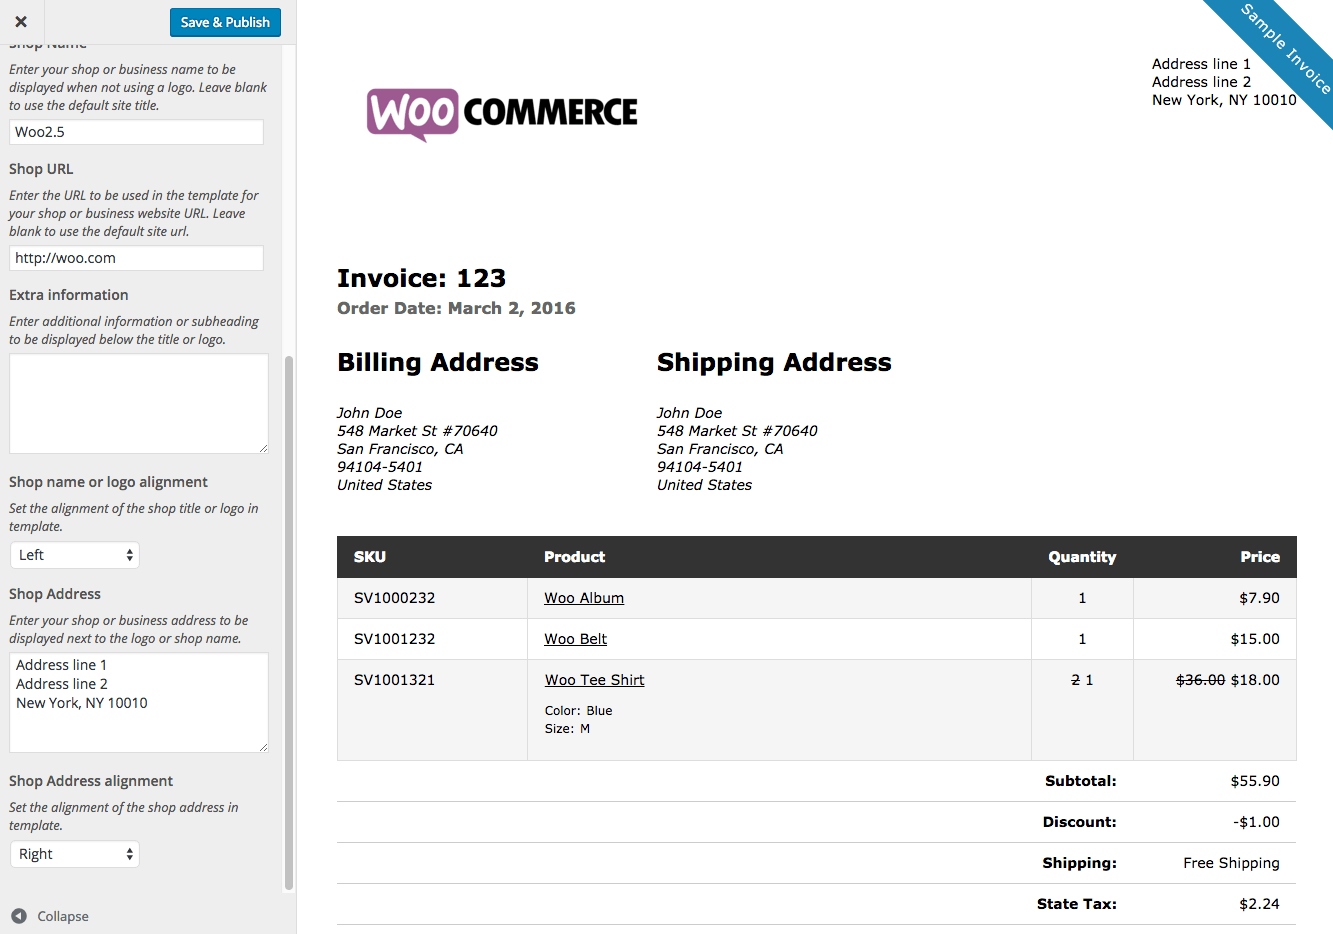 Weirdmailus  Terrific Woocommerce Print Invoices Amp Packing Lists  Woocommerce Docs With Fetching Woocommerce Print Invoices  Packing Lists Customizer With Captivating Goodwill Tax Receipt Form Also Taxi Cab Receipt Template In Addition I Receipt And Home Depot Receipt Number As Well As Scan And Organize Receipts Additionally Read Receipt In Yahoo Mail From Docswoocommercecom With Weirdmailus  Fetching Woocommerce Print Invoices Amp Packing Lists  Woocommerce Docs With Captivating Woocommerce Print Invoices  Packing Lists Customizer And Terrific Goodwill Tax Receipt Form Also Taxi Cab Receipt Template In Addition I Receipt From Docswoocommercecom